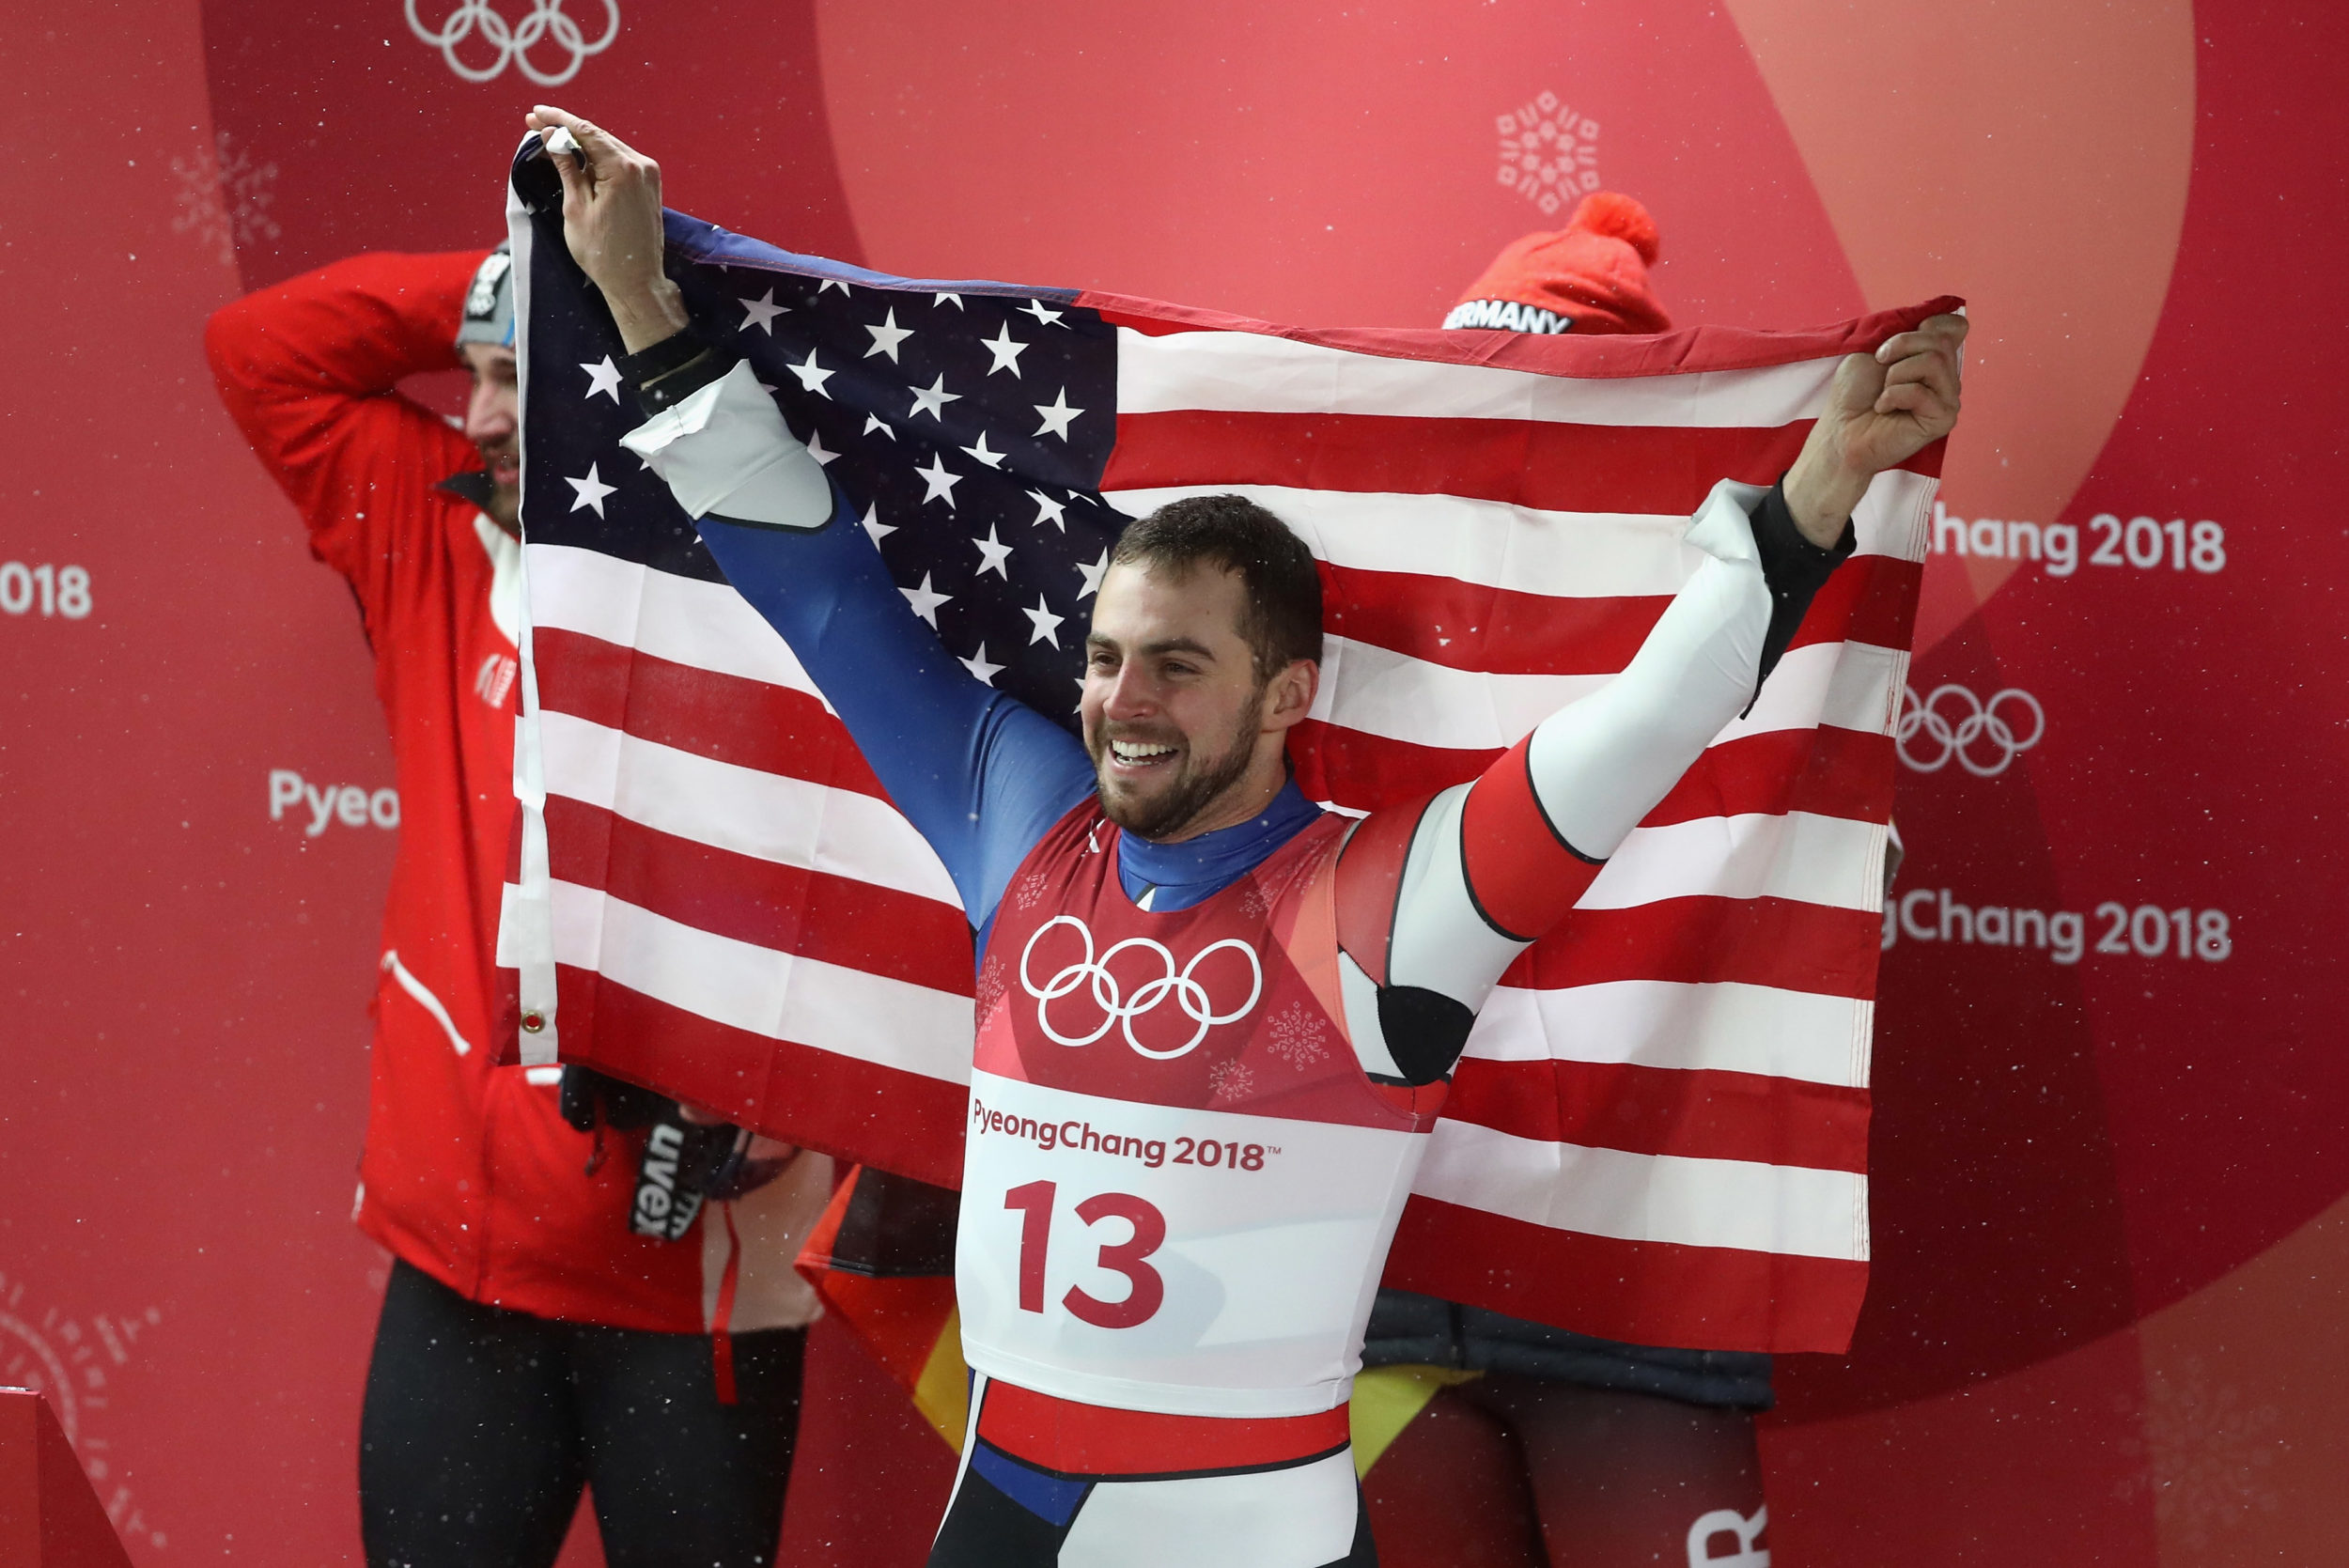 Chris Mazdzer just made U.S. Olympic history with a singles luge medal, and silver looks good on him